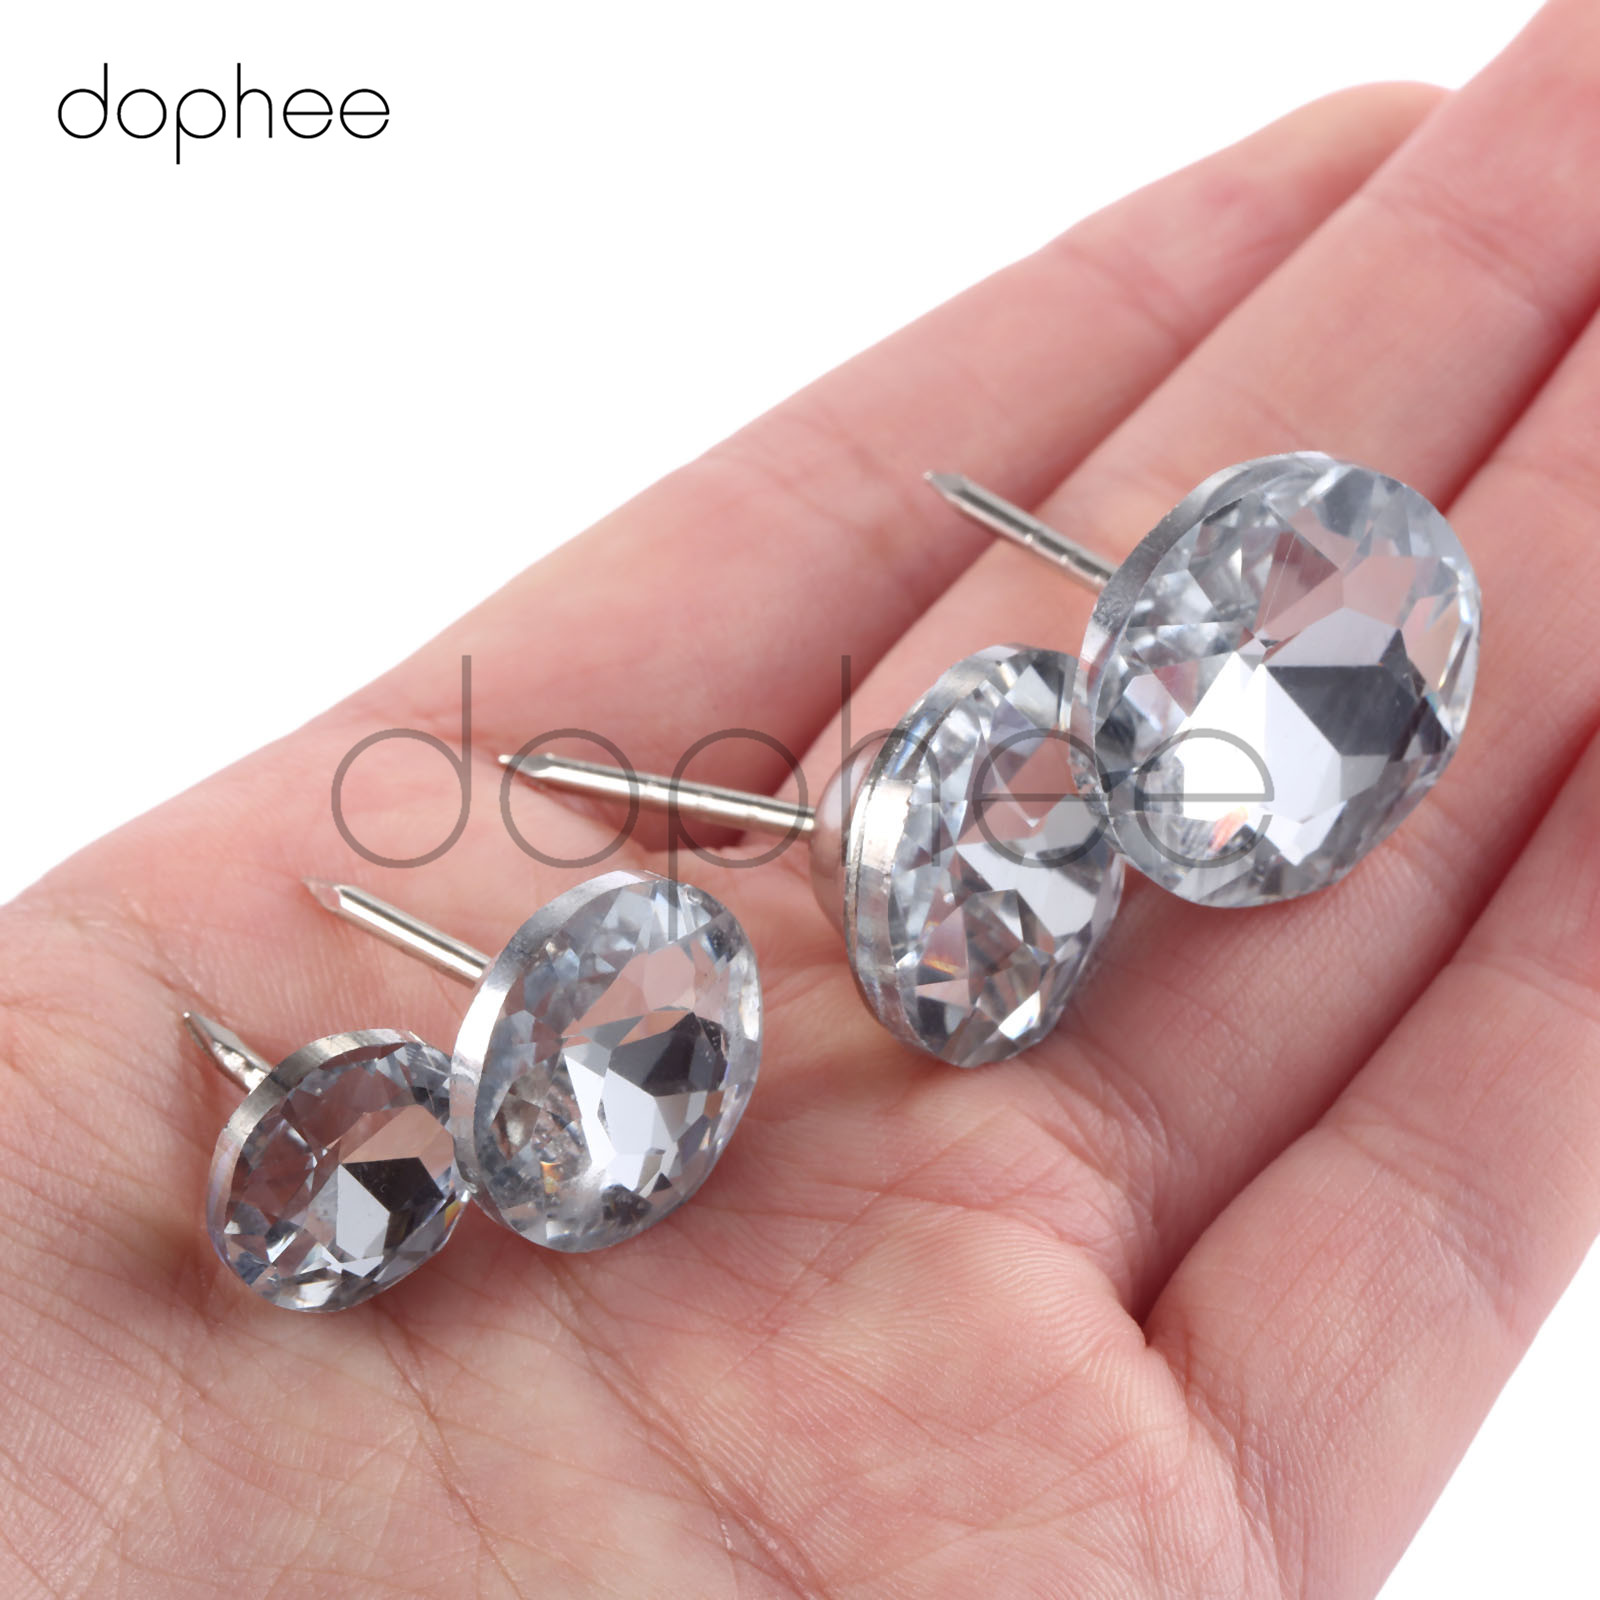 Arts,crafts & Sewing Dophee 10pcs Diamond Pattern Crystal Nails Button 18/20mm Rhinestone Crystal Buttons For Diy Sewing Accessories Ideal Gift For All Occasions